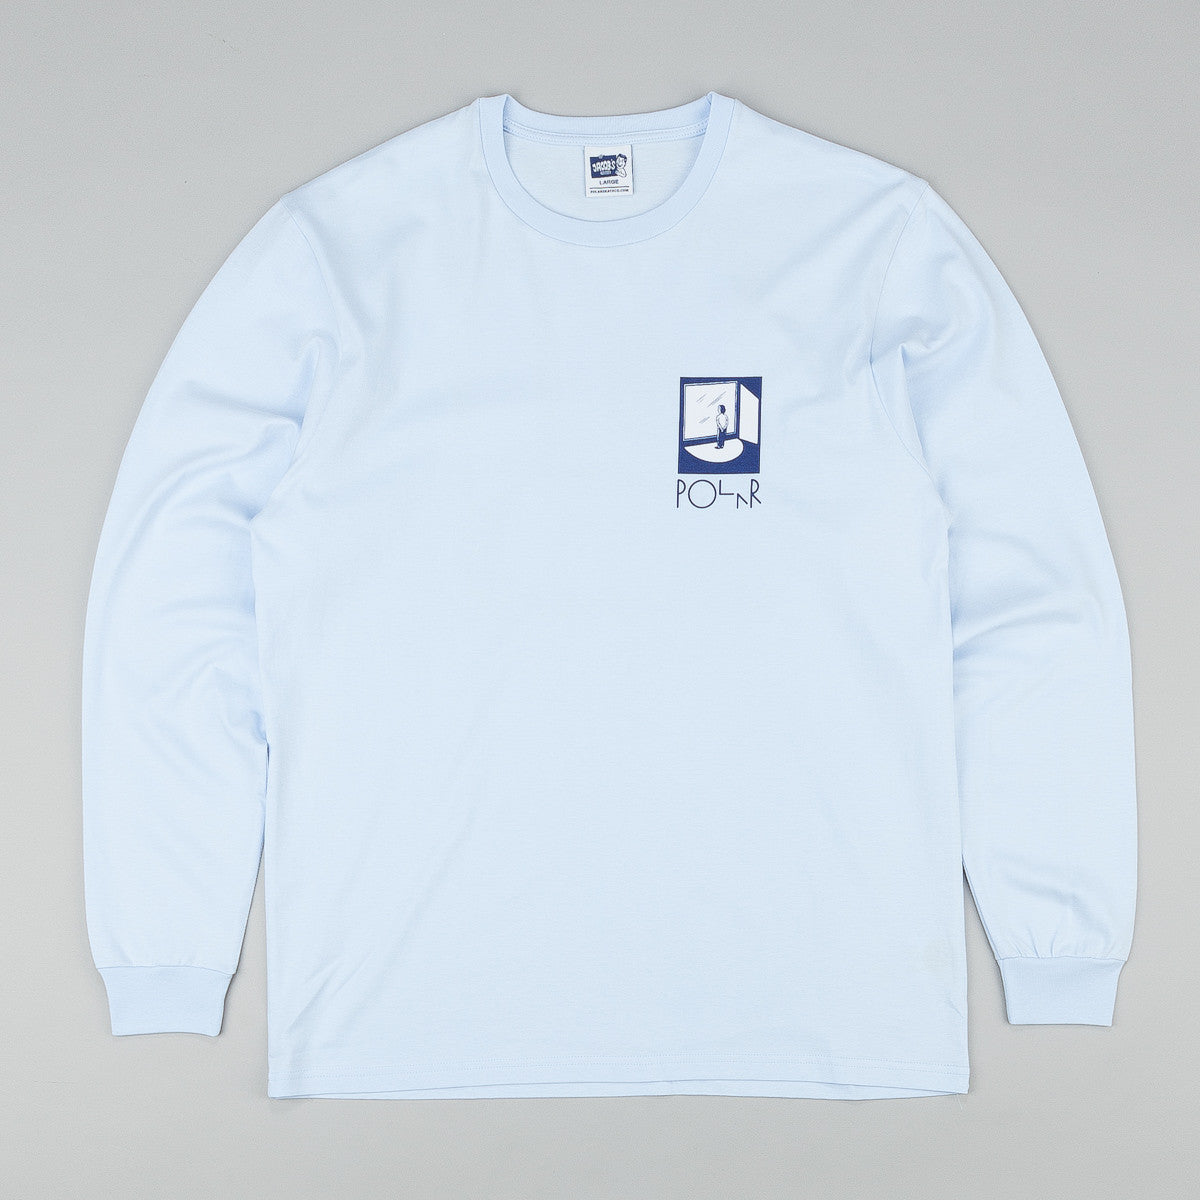 Polar Jacob's Corner Fuck It L/S T-Shirt - Pastel Blue / Navy / White